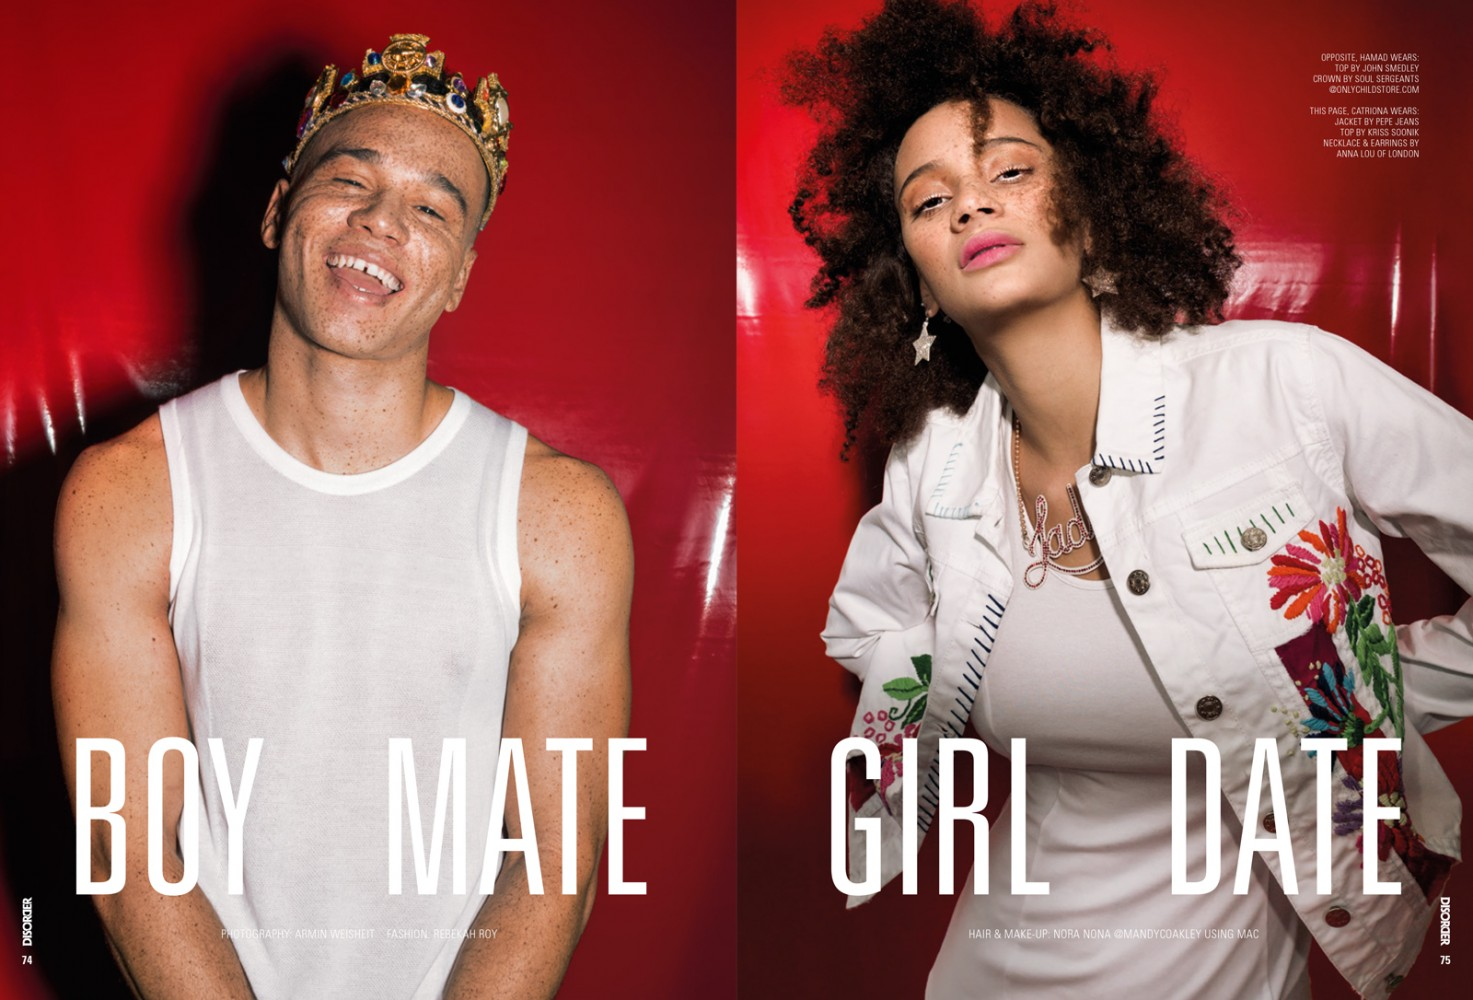 Disorder_Issue02_Boy-Mate-Girl-Date-2